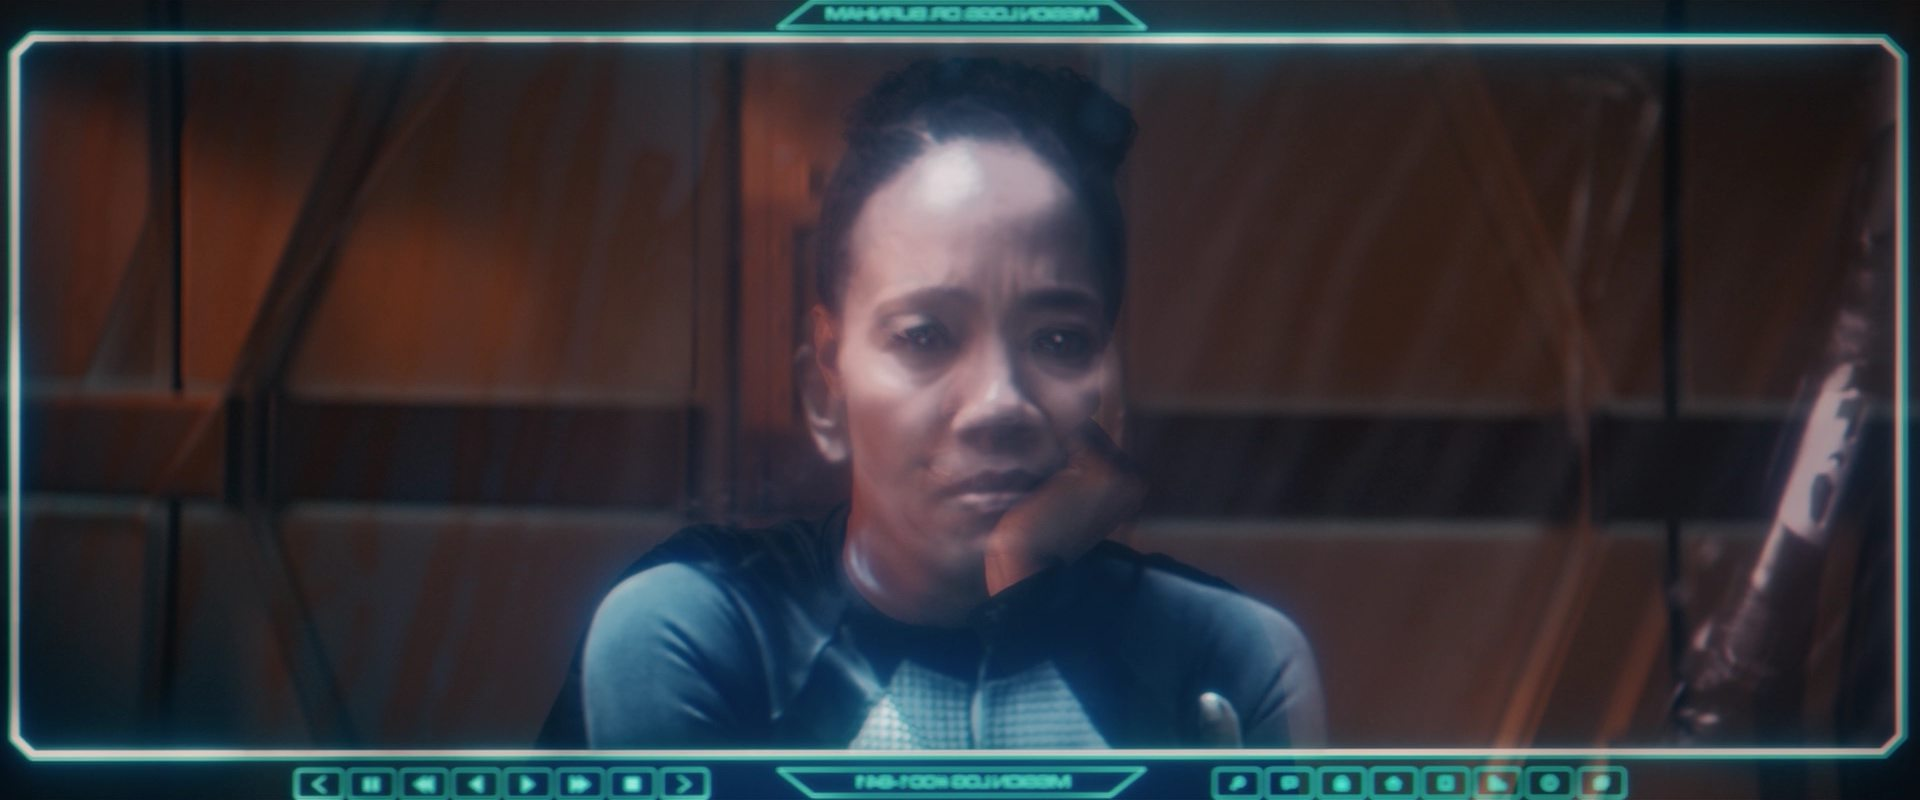 extant_StarTrekDiscovery_2x12-ThroughTheValleyOfShadows_00171.jpg